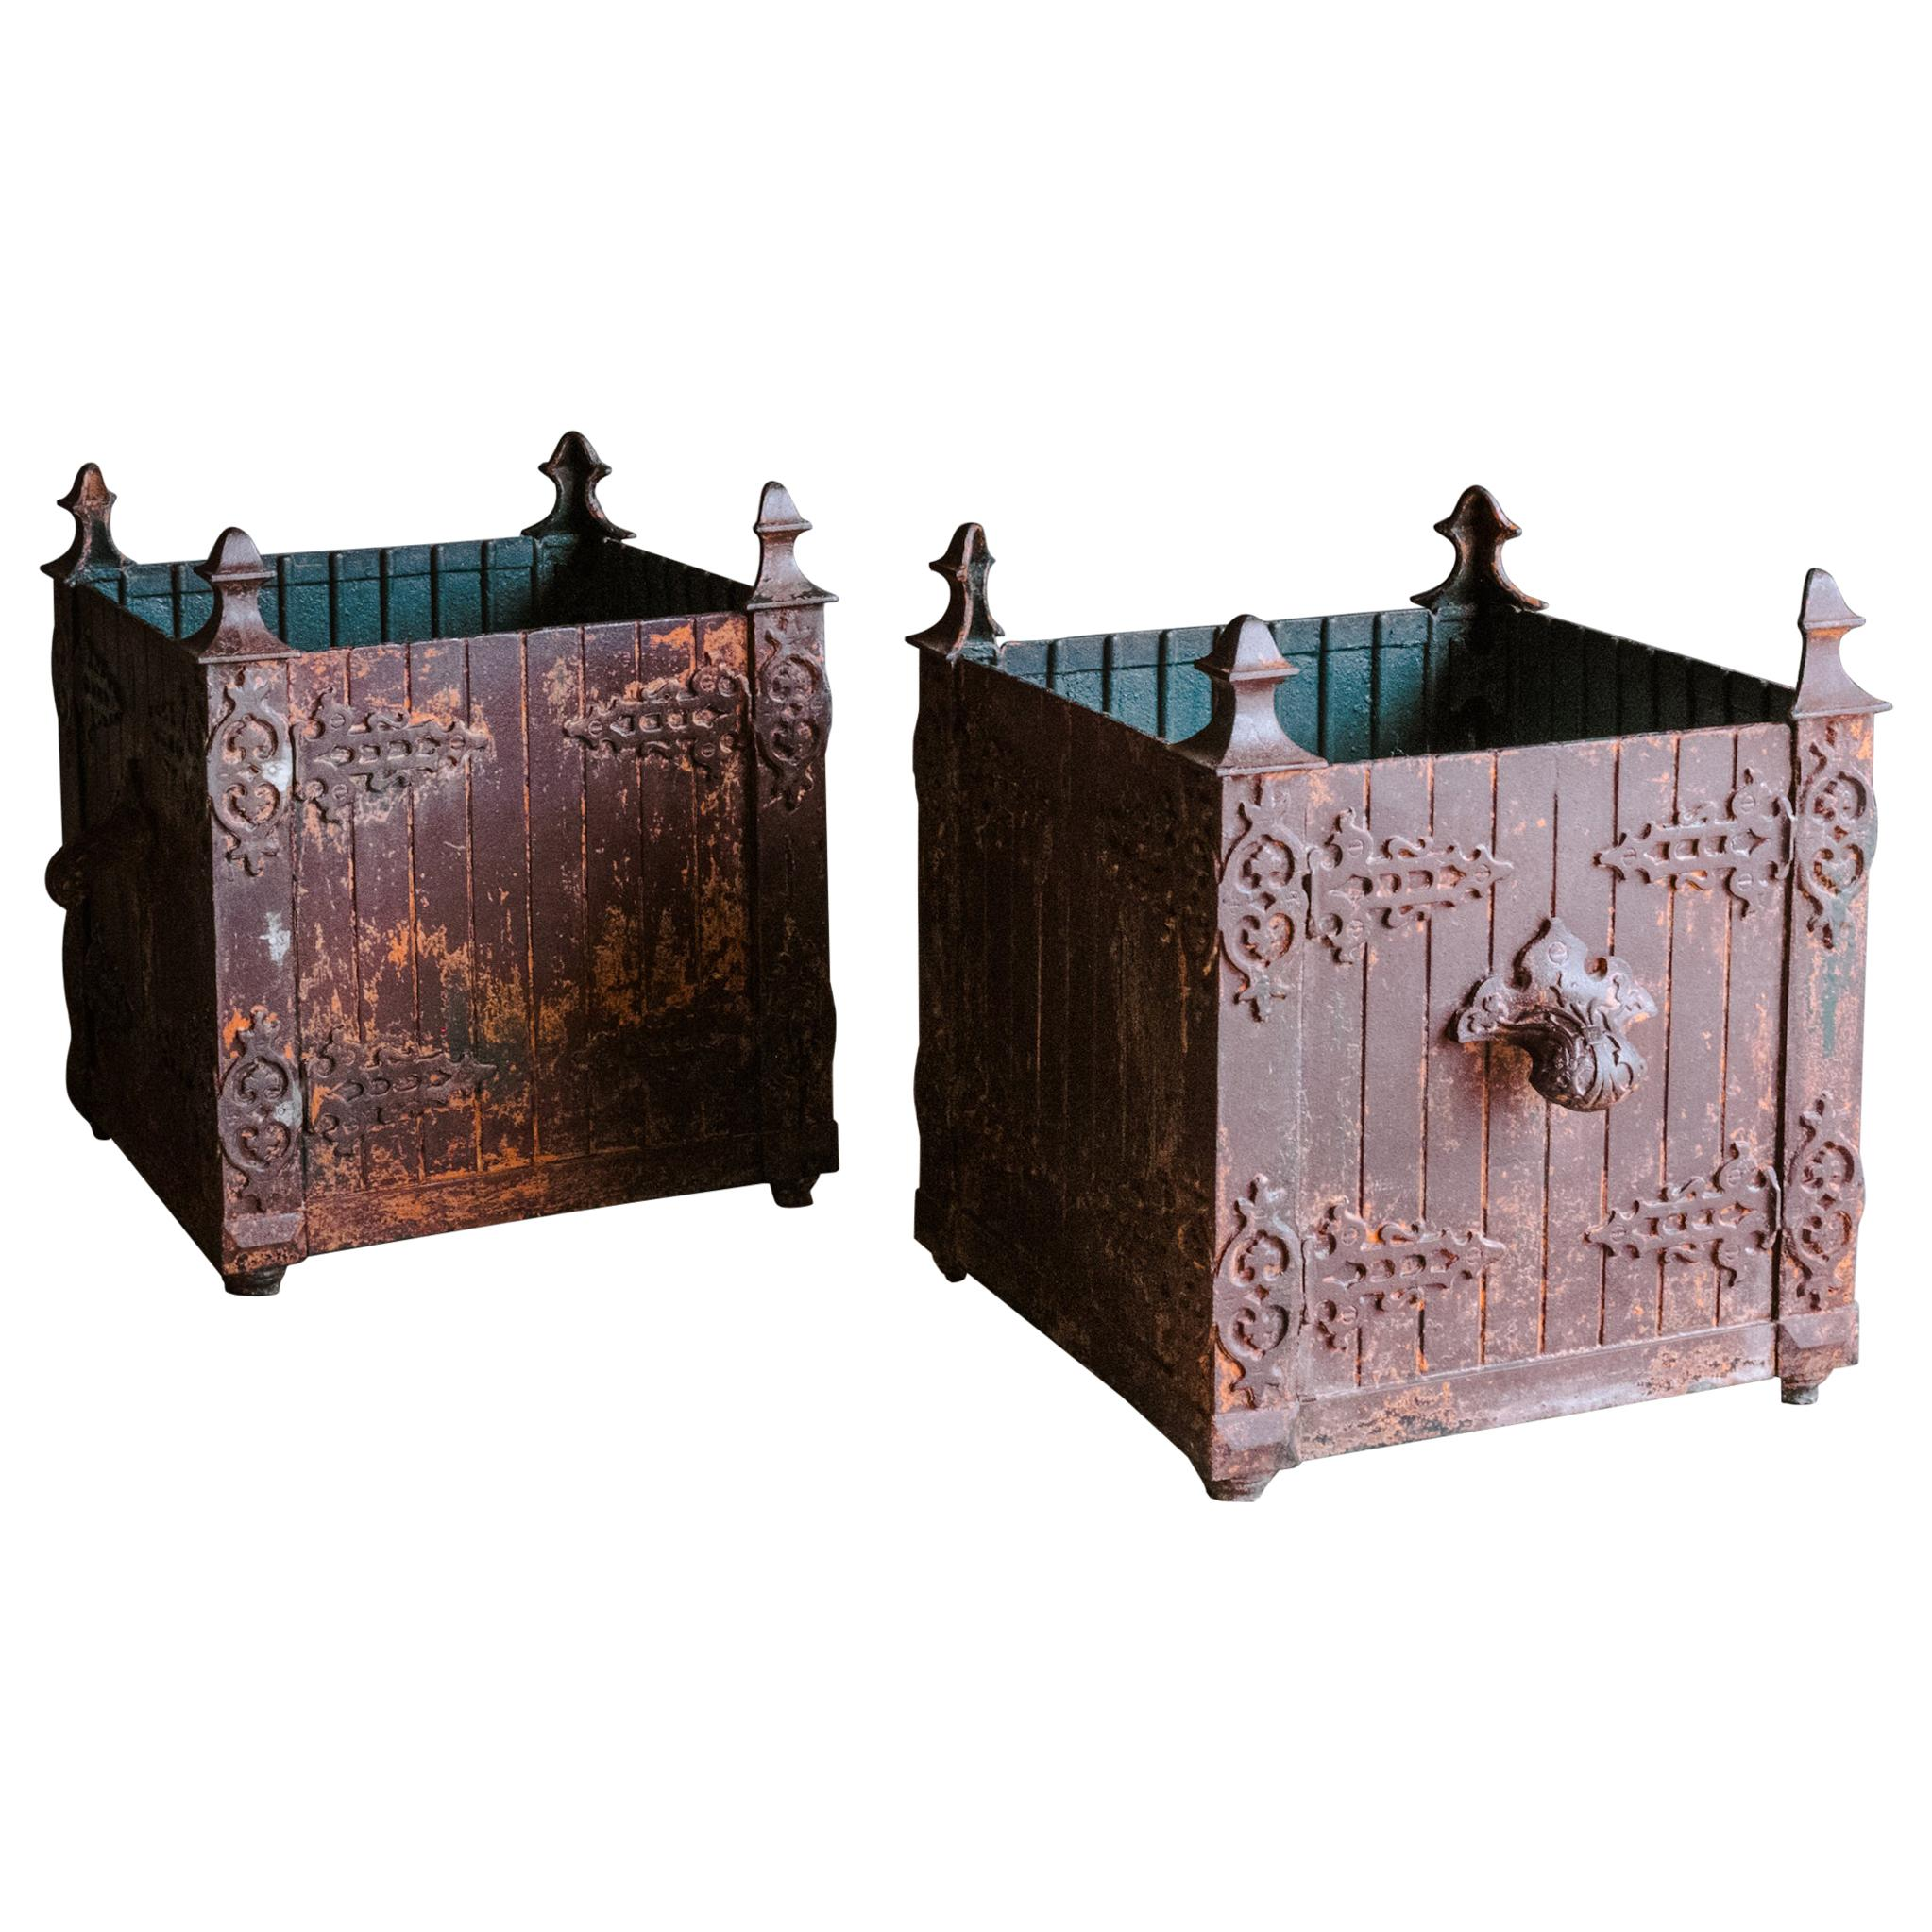 Superb Pair of Cast Iron Orangery Planters from France, Circa 1880